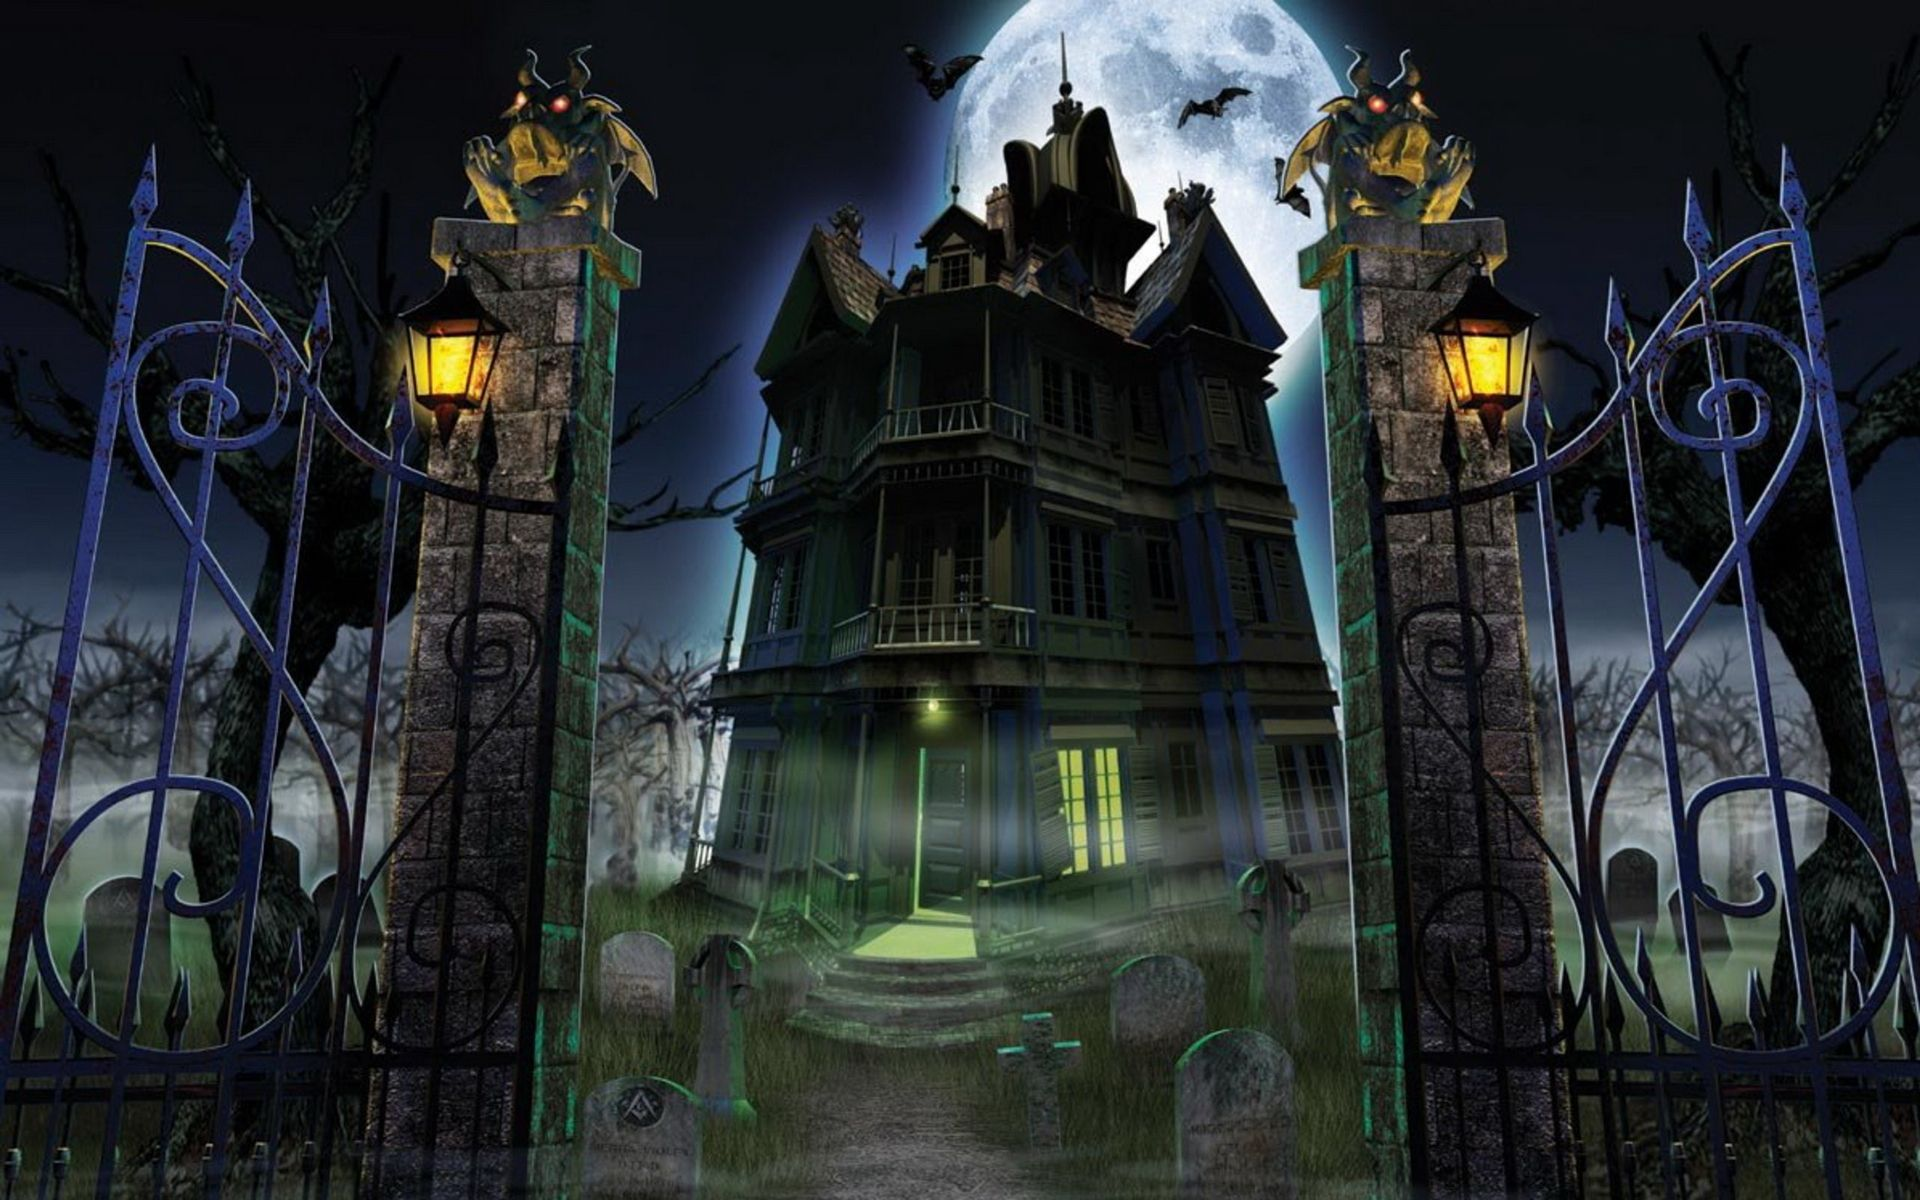 halloween horror ghost house hd wallpapers desktop background